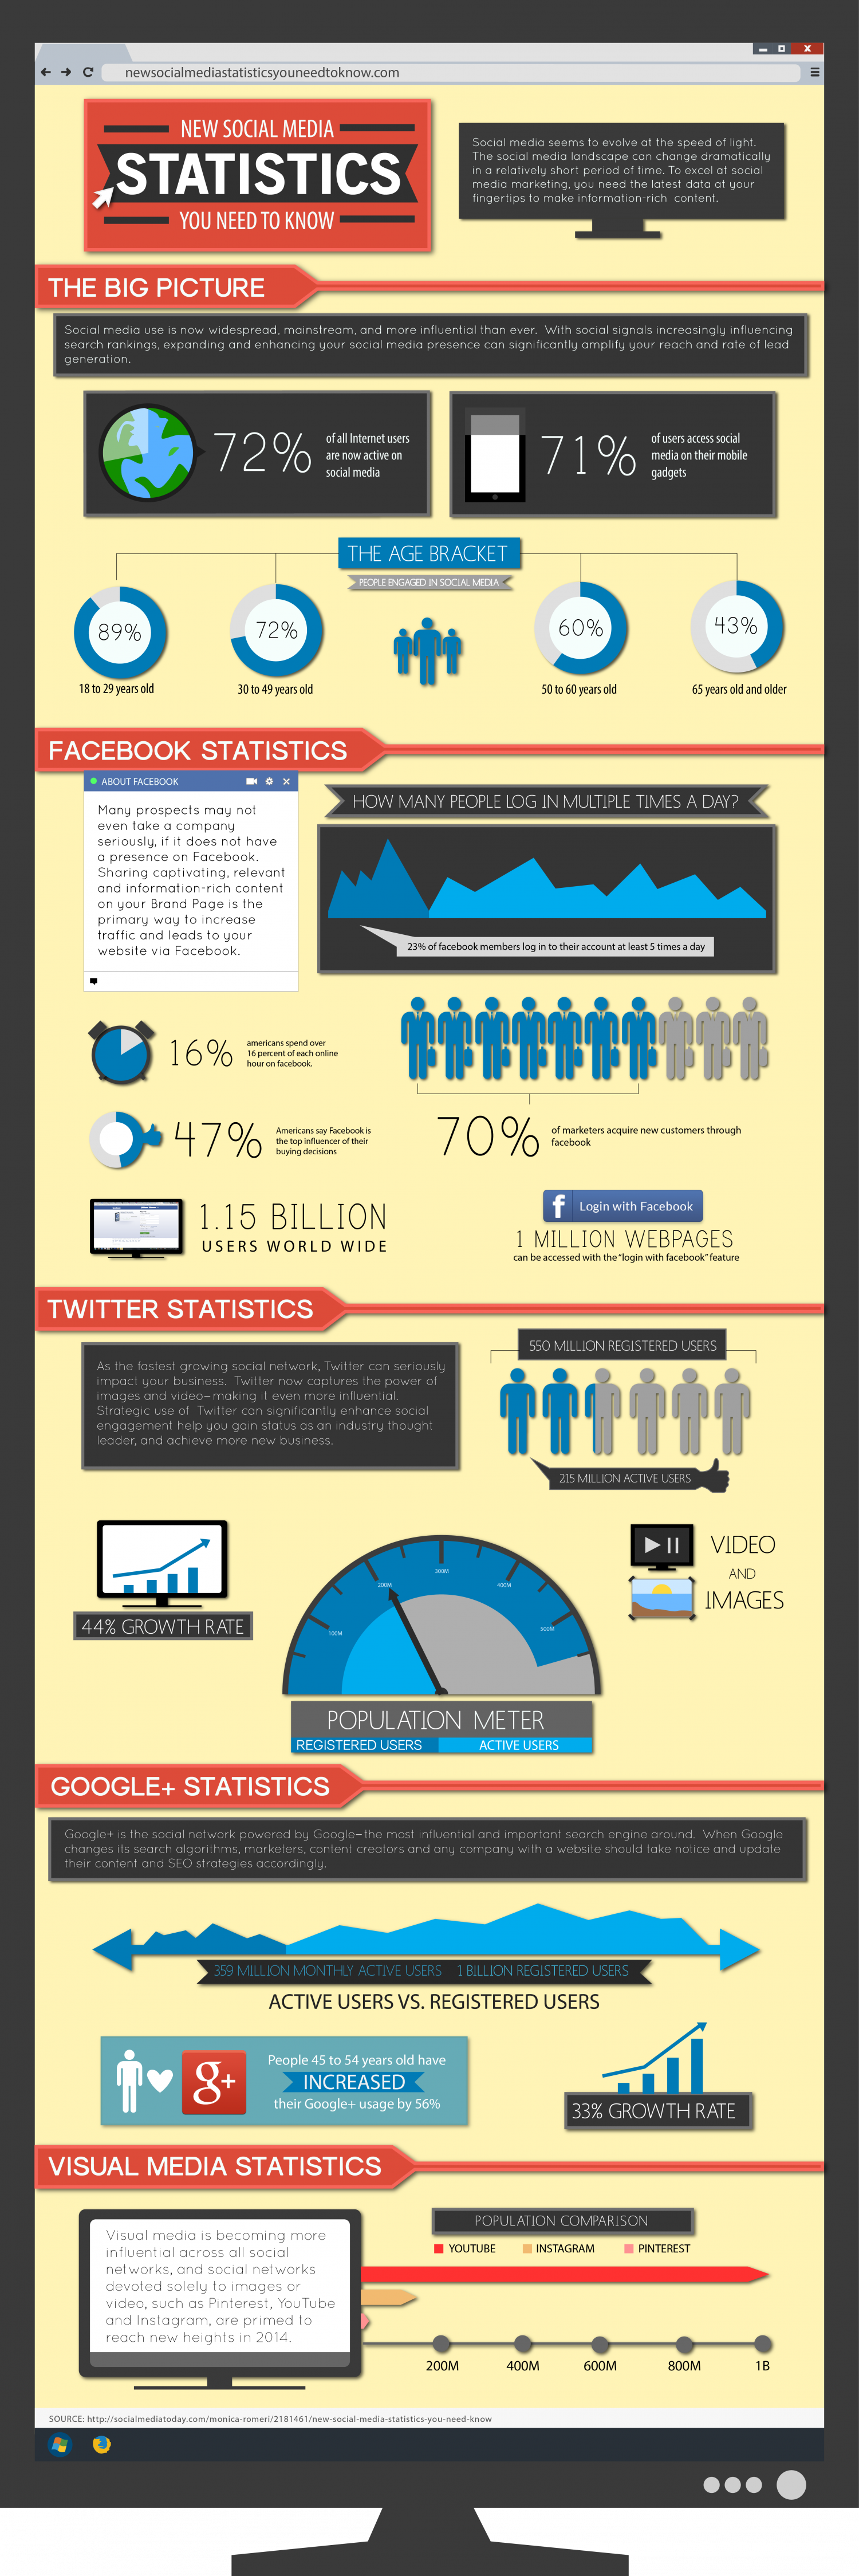 New social stats you need know